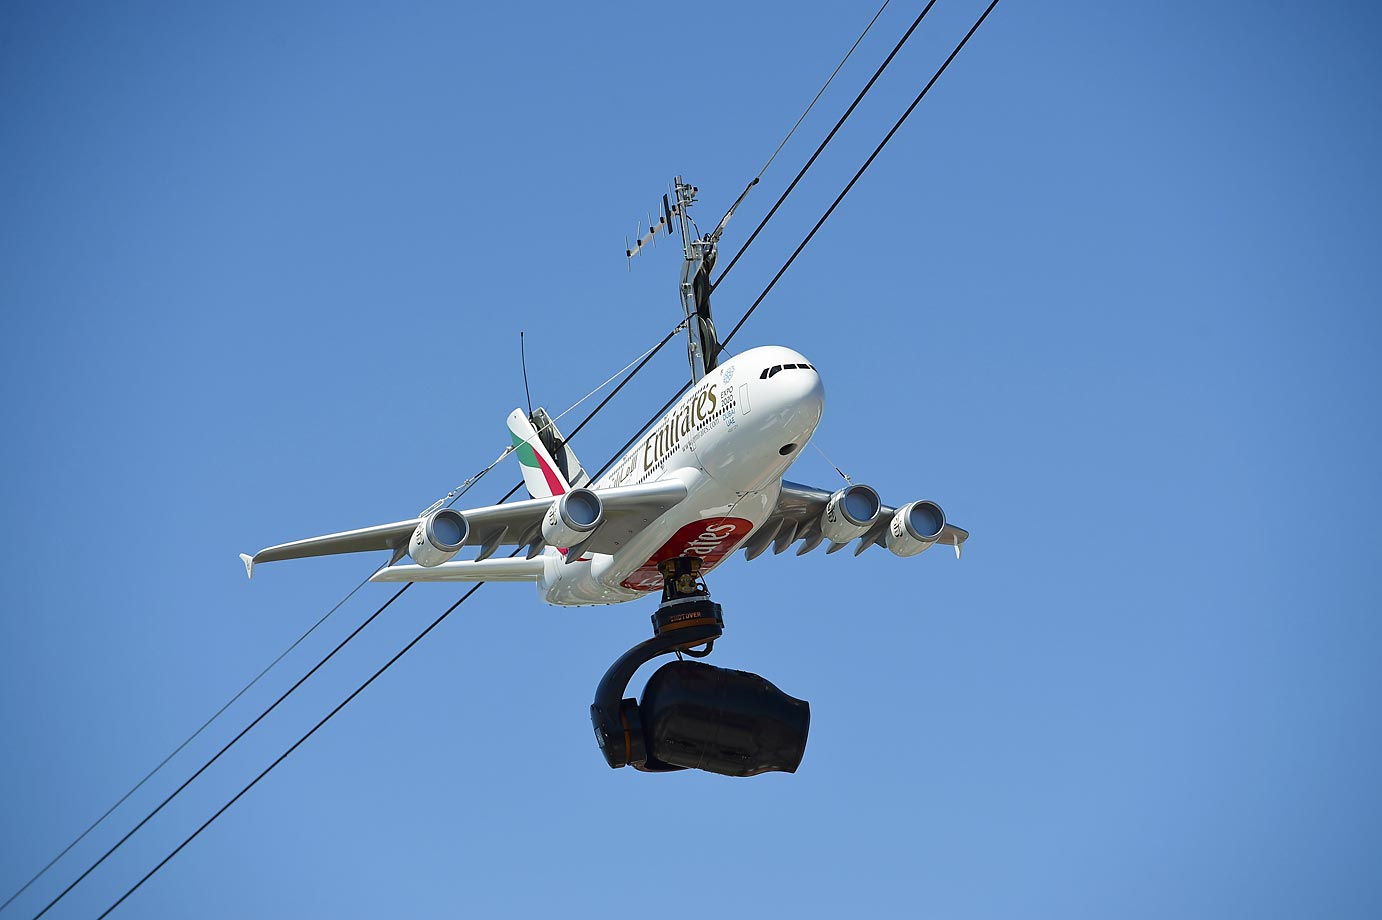 A remote camera hangs from a faux airplane at the French Open on June 6.